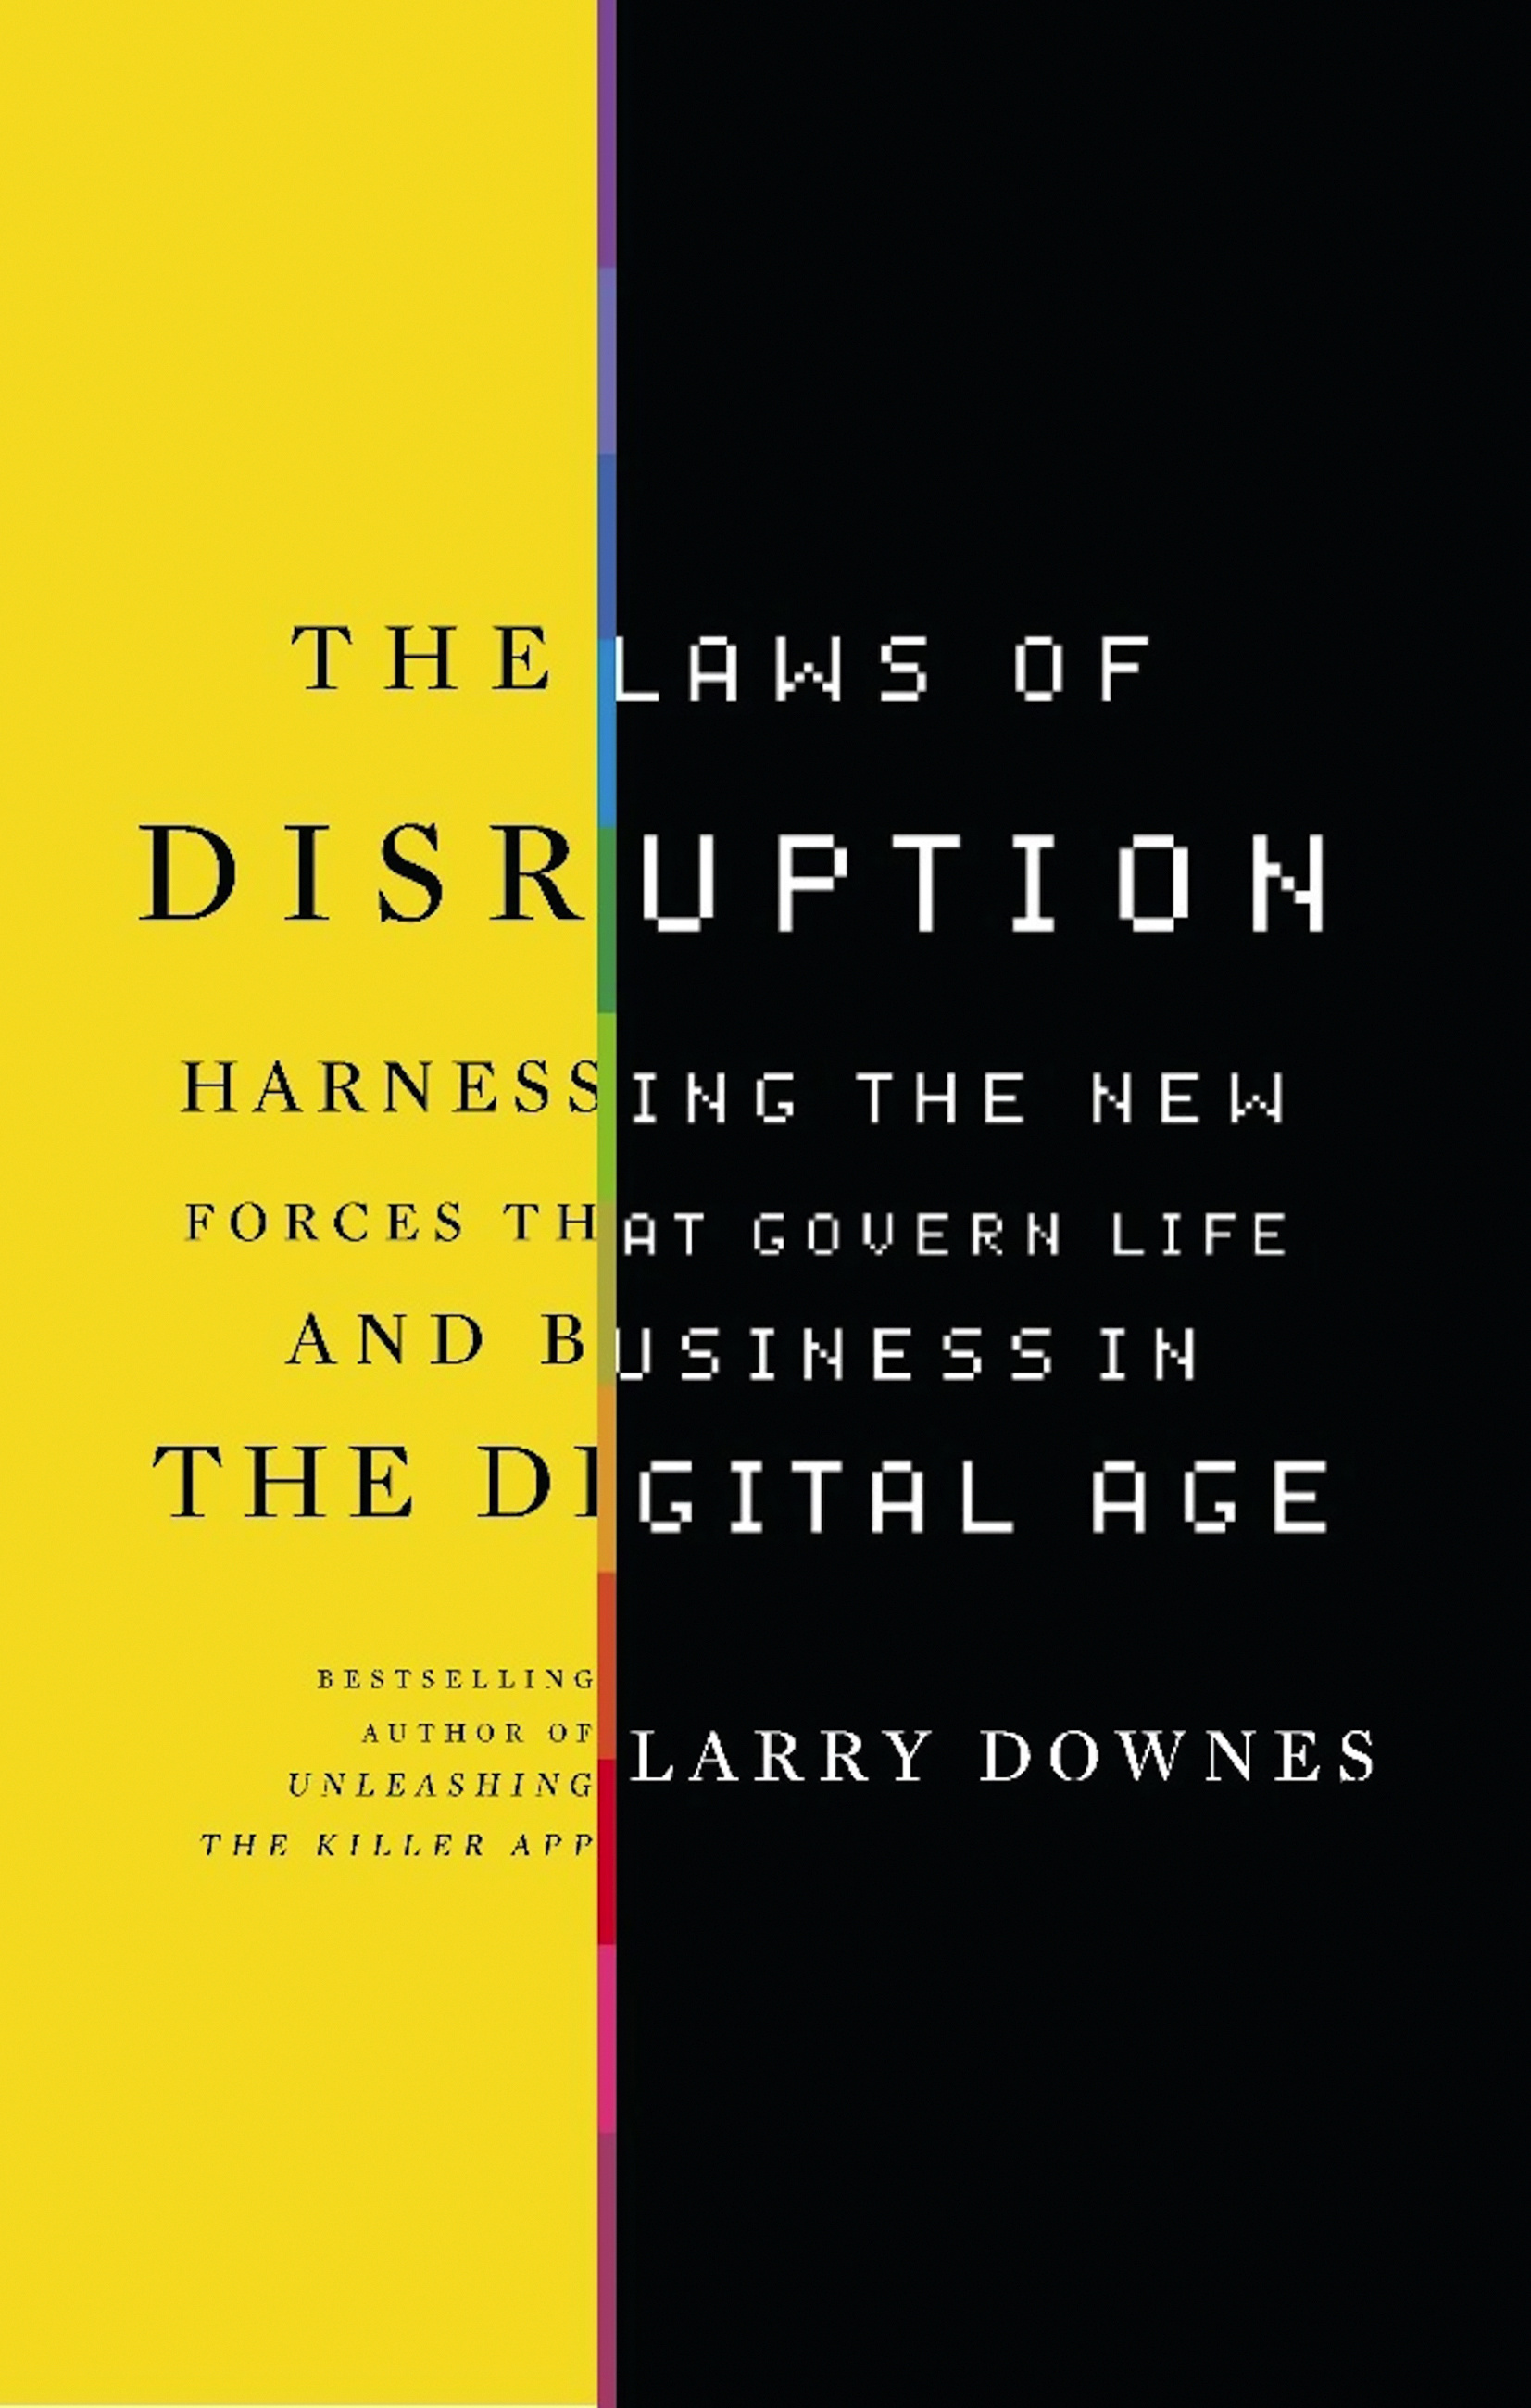 The laws of disruption by larry downes basic books fandeluxe Gallery